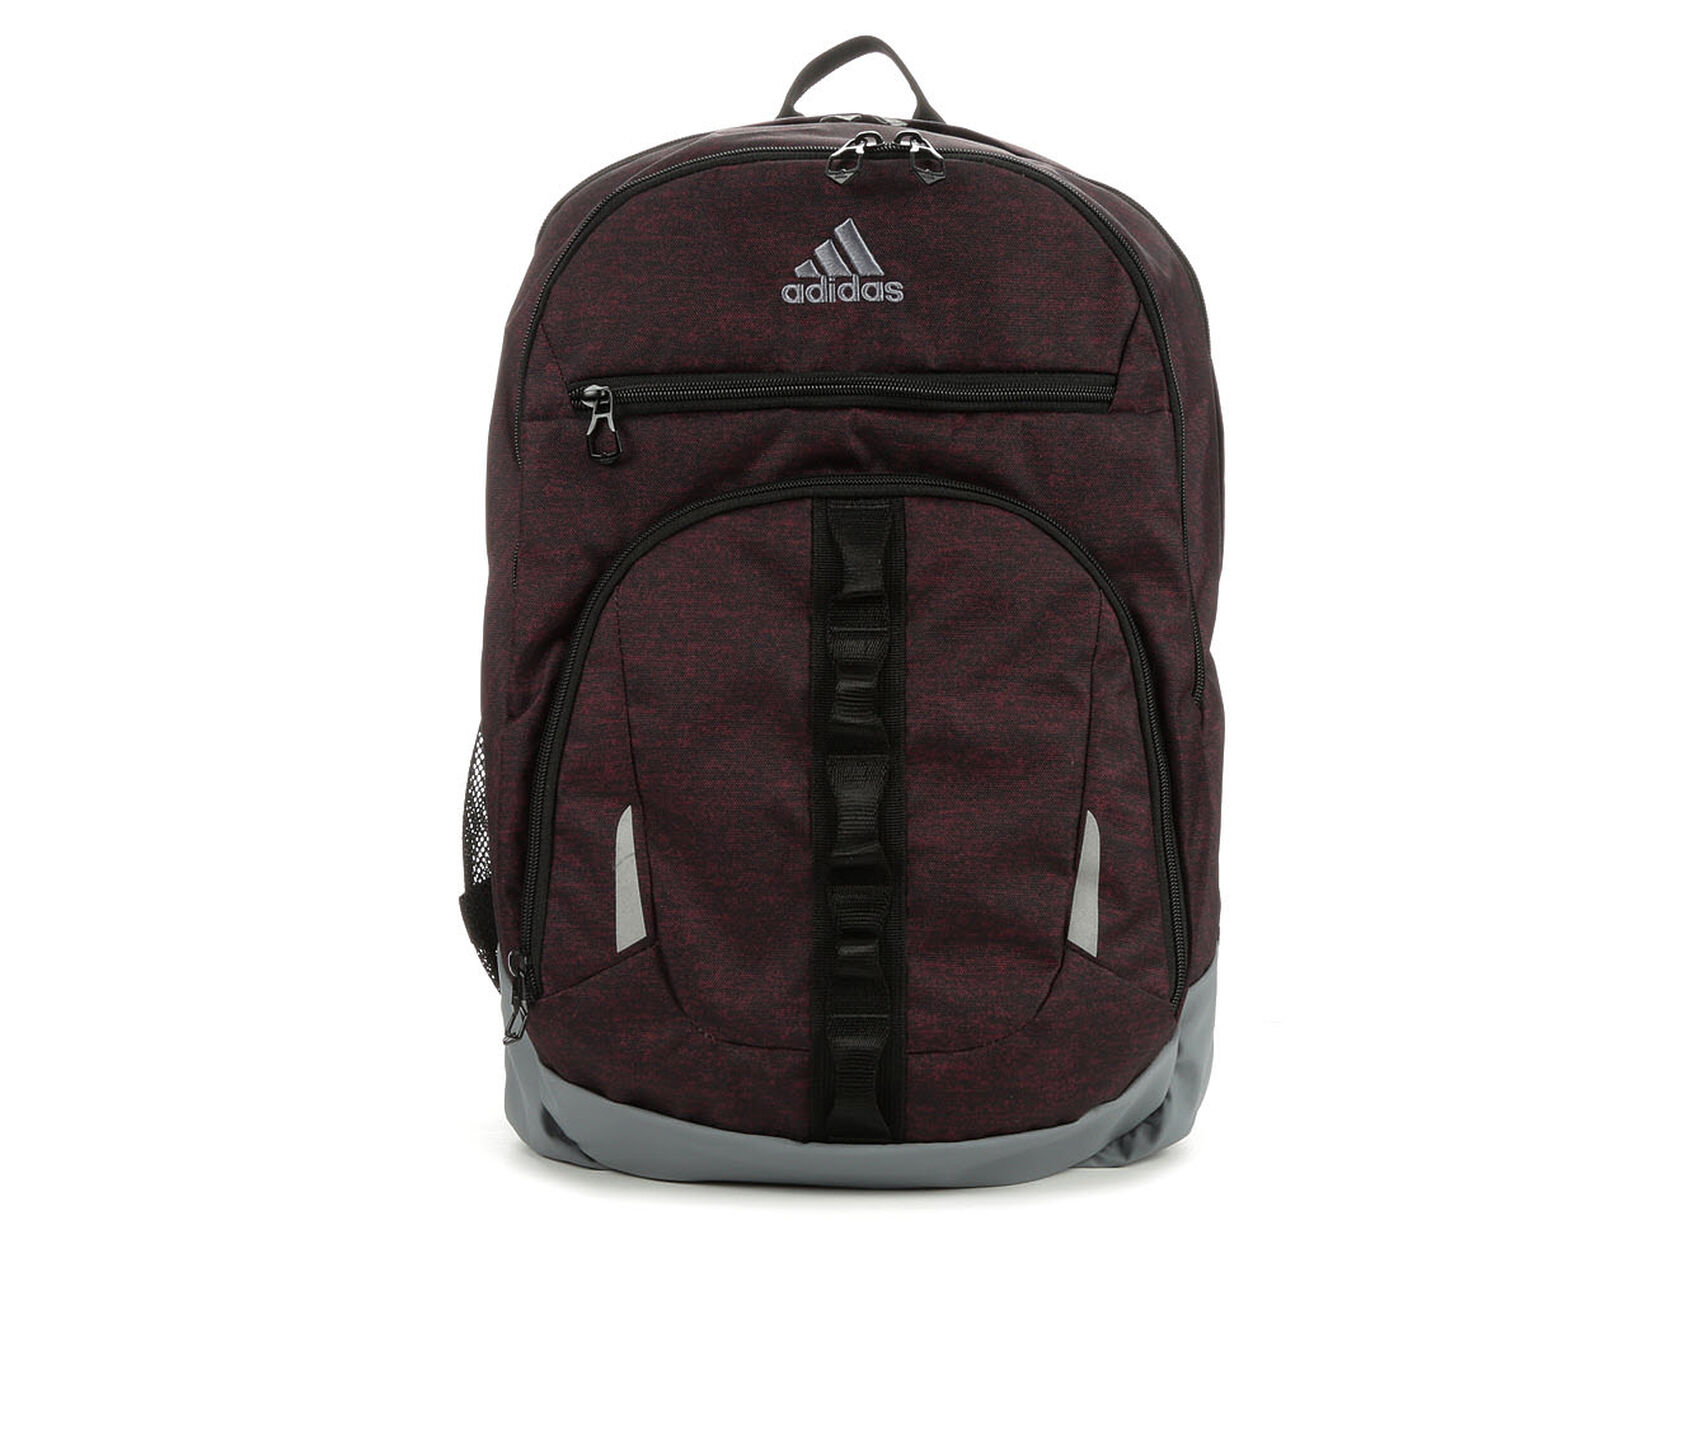 08f8fcdc59 Adidas Prime IV Backpack. Previous